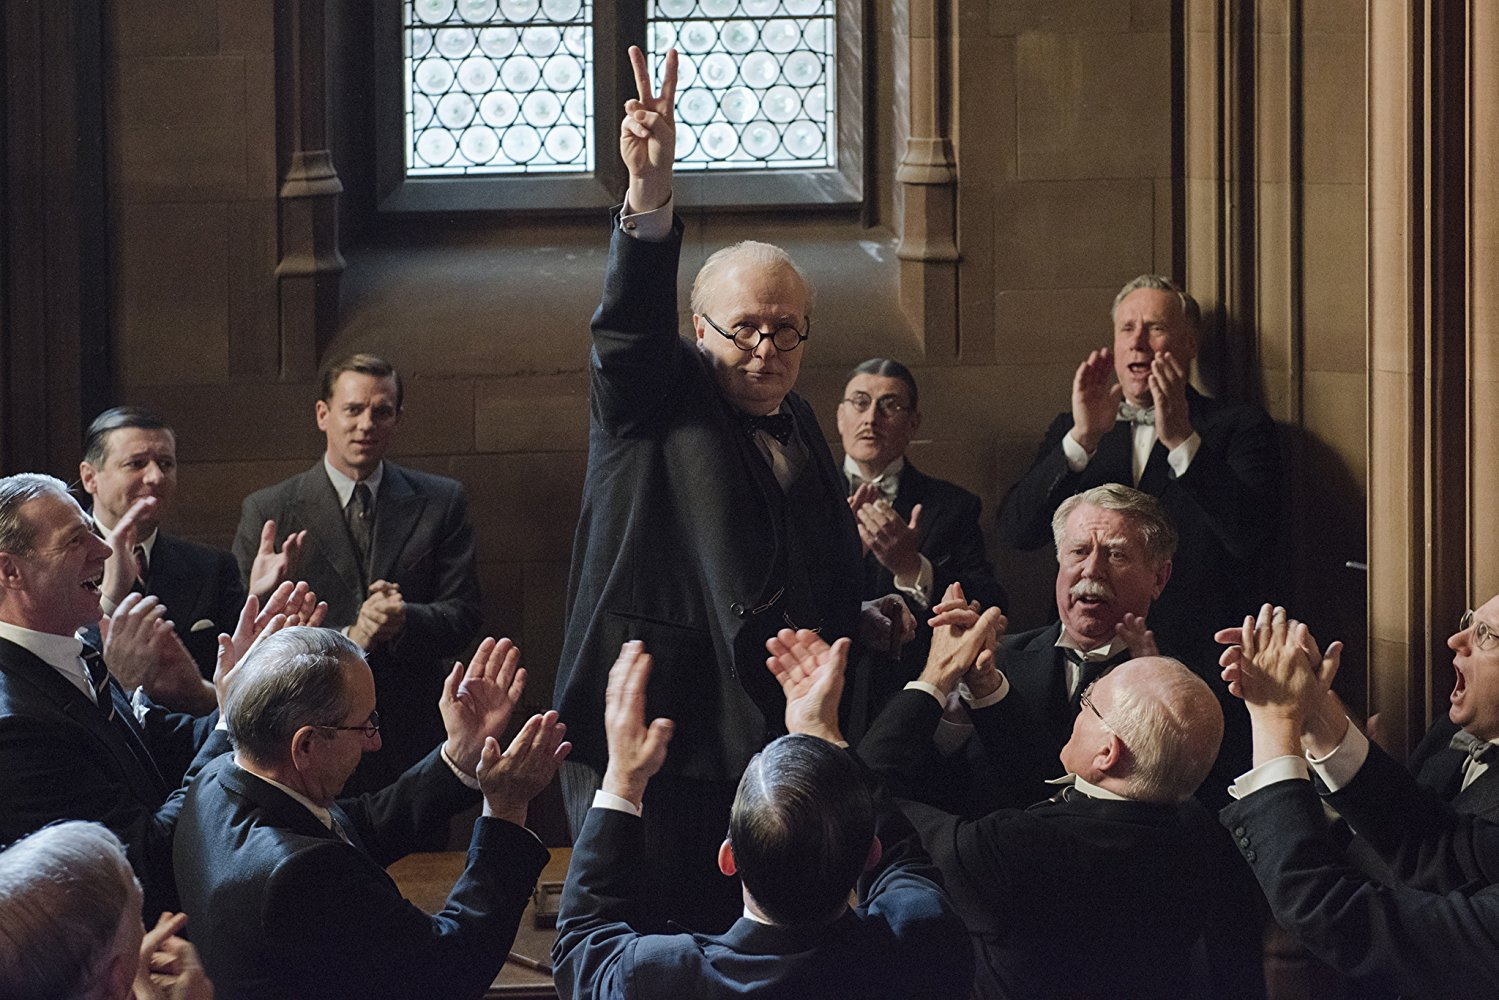 'Darkest Hour' is a carefully edited story of Winston Churchill